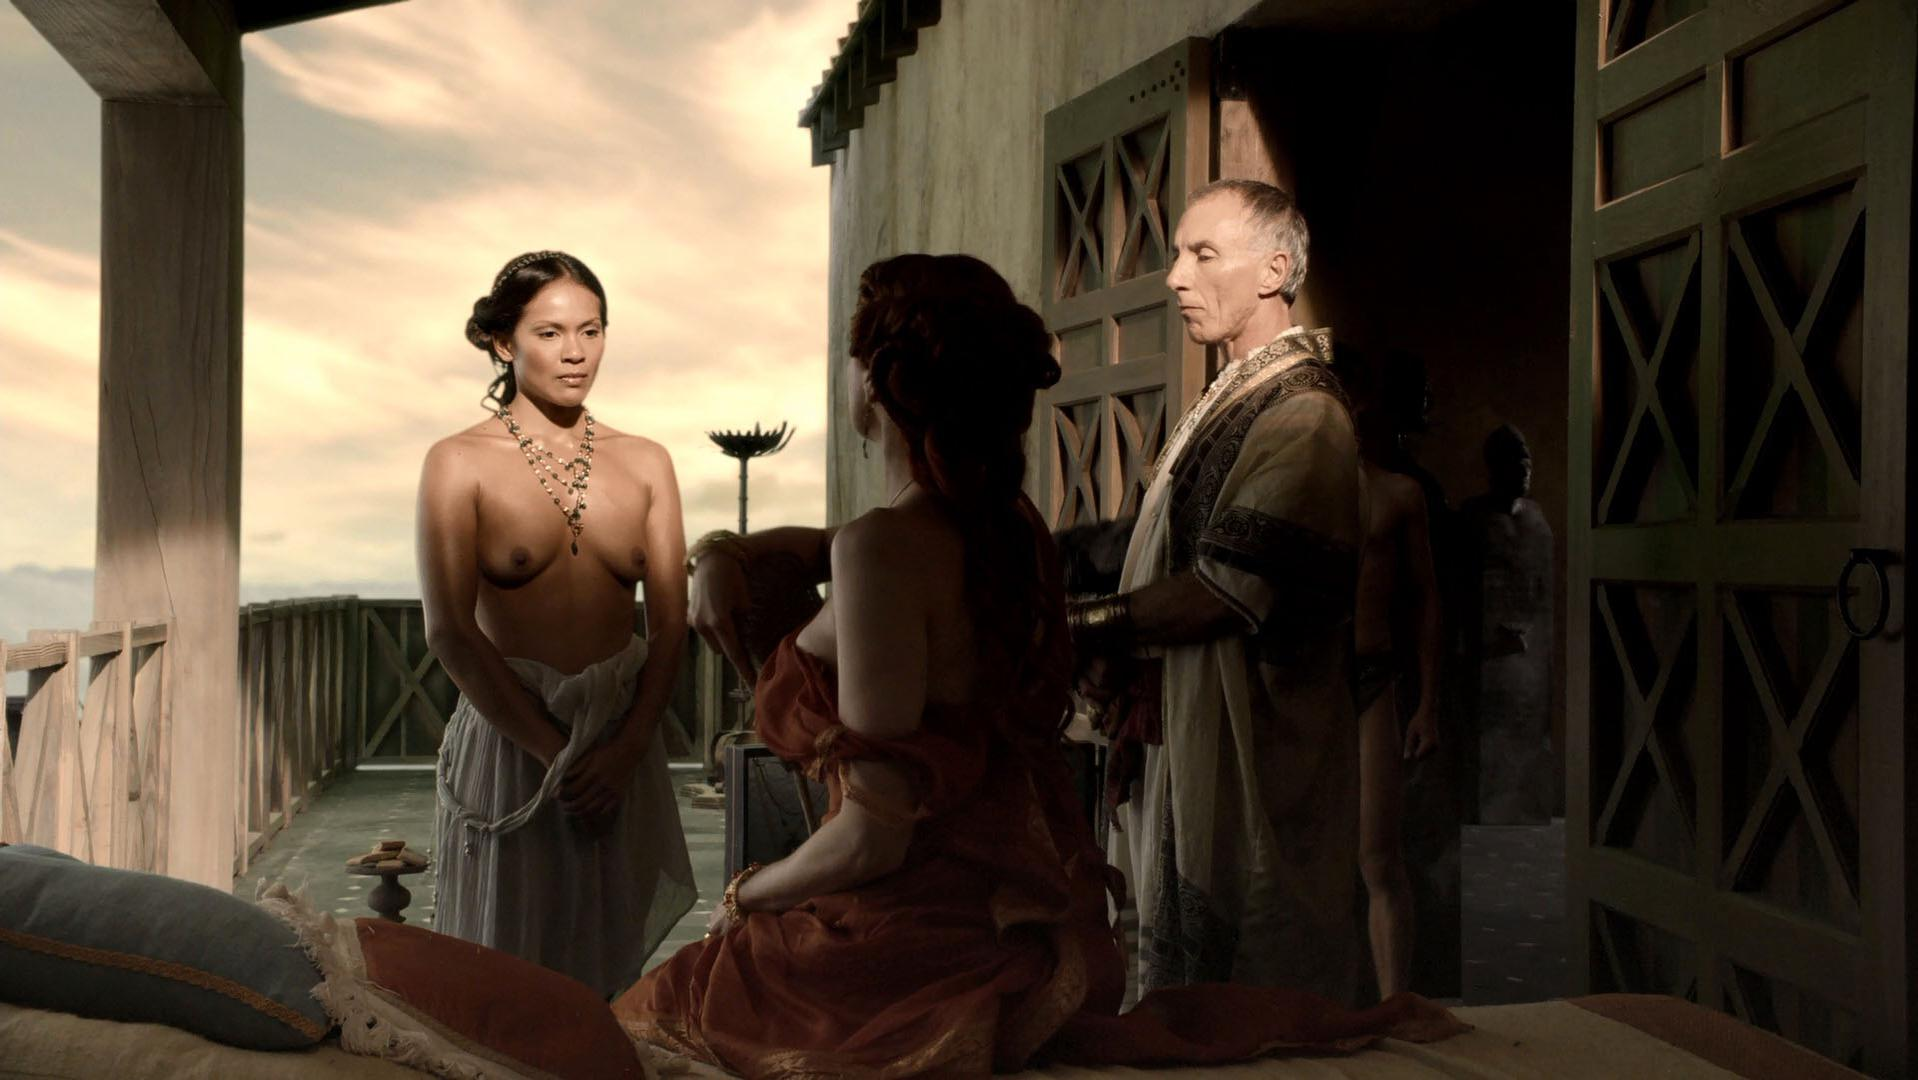 Lesley-Ann Brandt nude - Spartacus: Blood and Sand season 1 (2010)